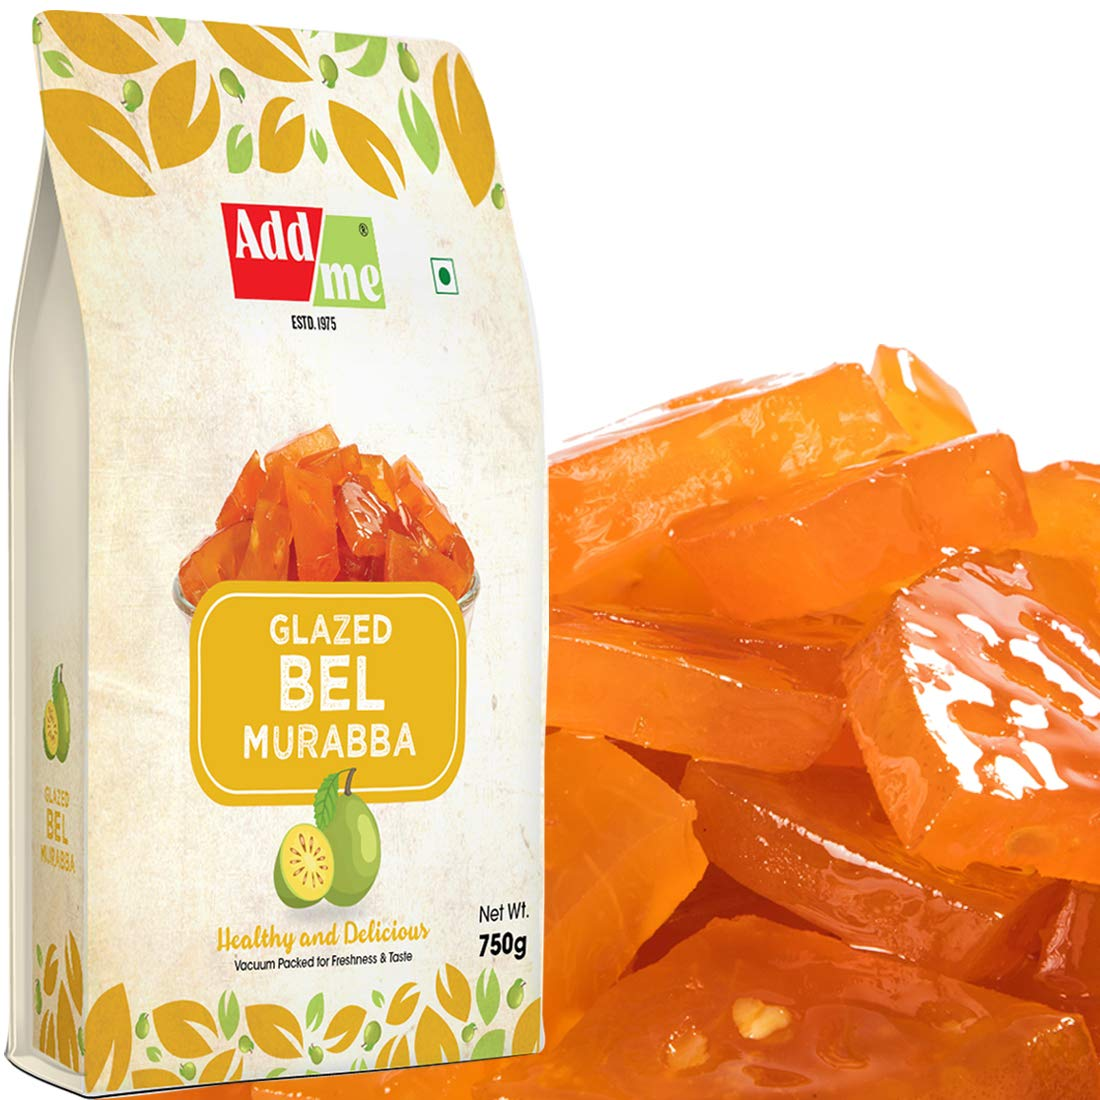 Add Me Special Bel Murabba, Apple Murrabba 750G Each Without Sugar Syrup Immunity Booster Pack Of 2